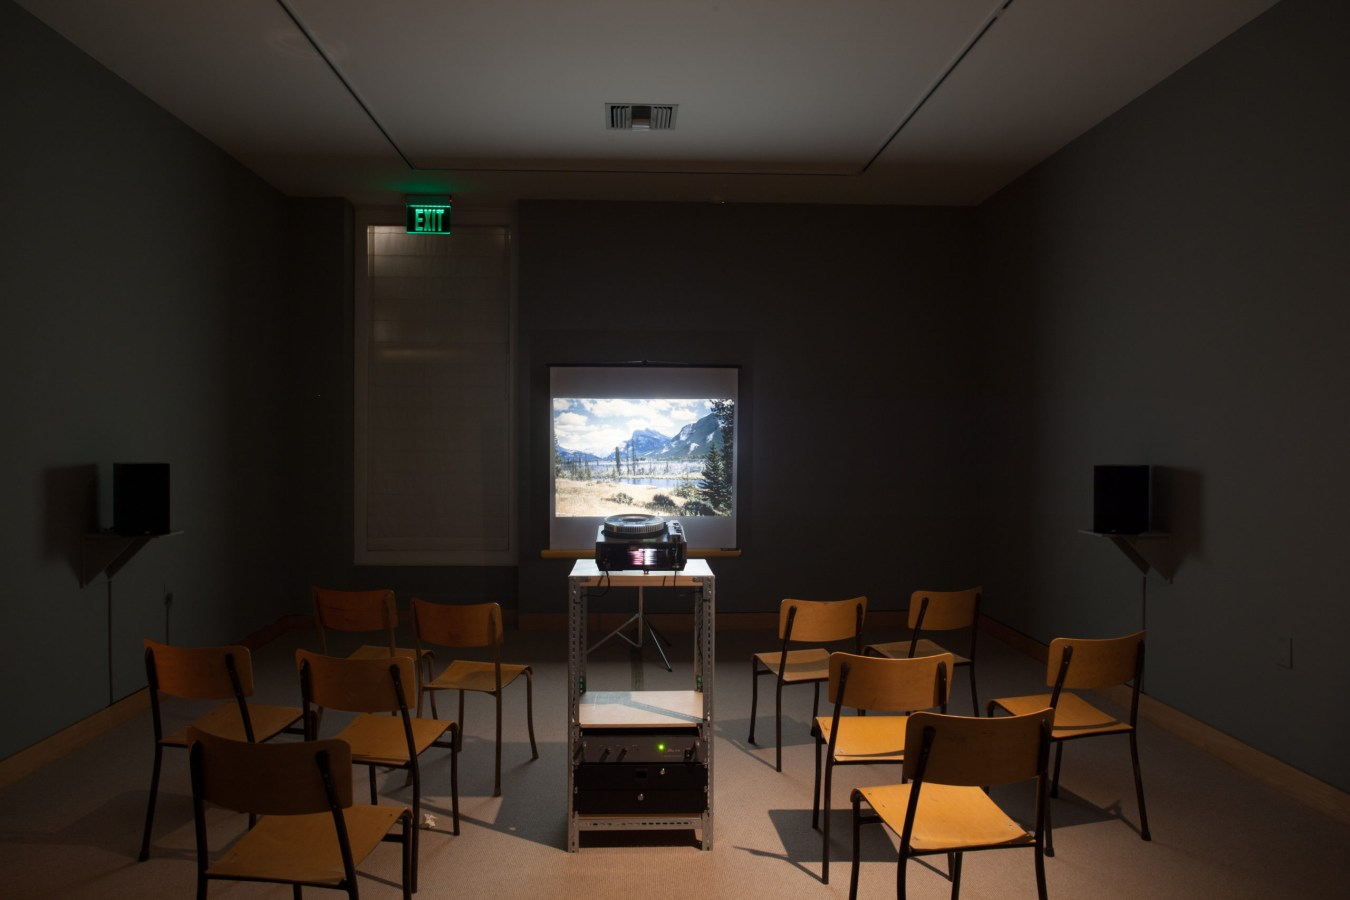 Photograph of an installation of a slide projector, flanked by chairs, projecting a color landscape onto a screen